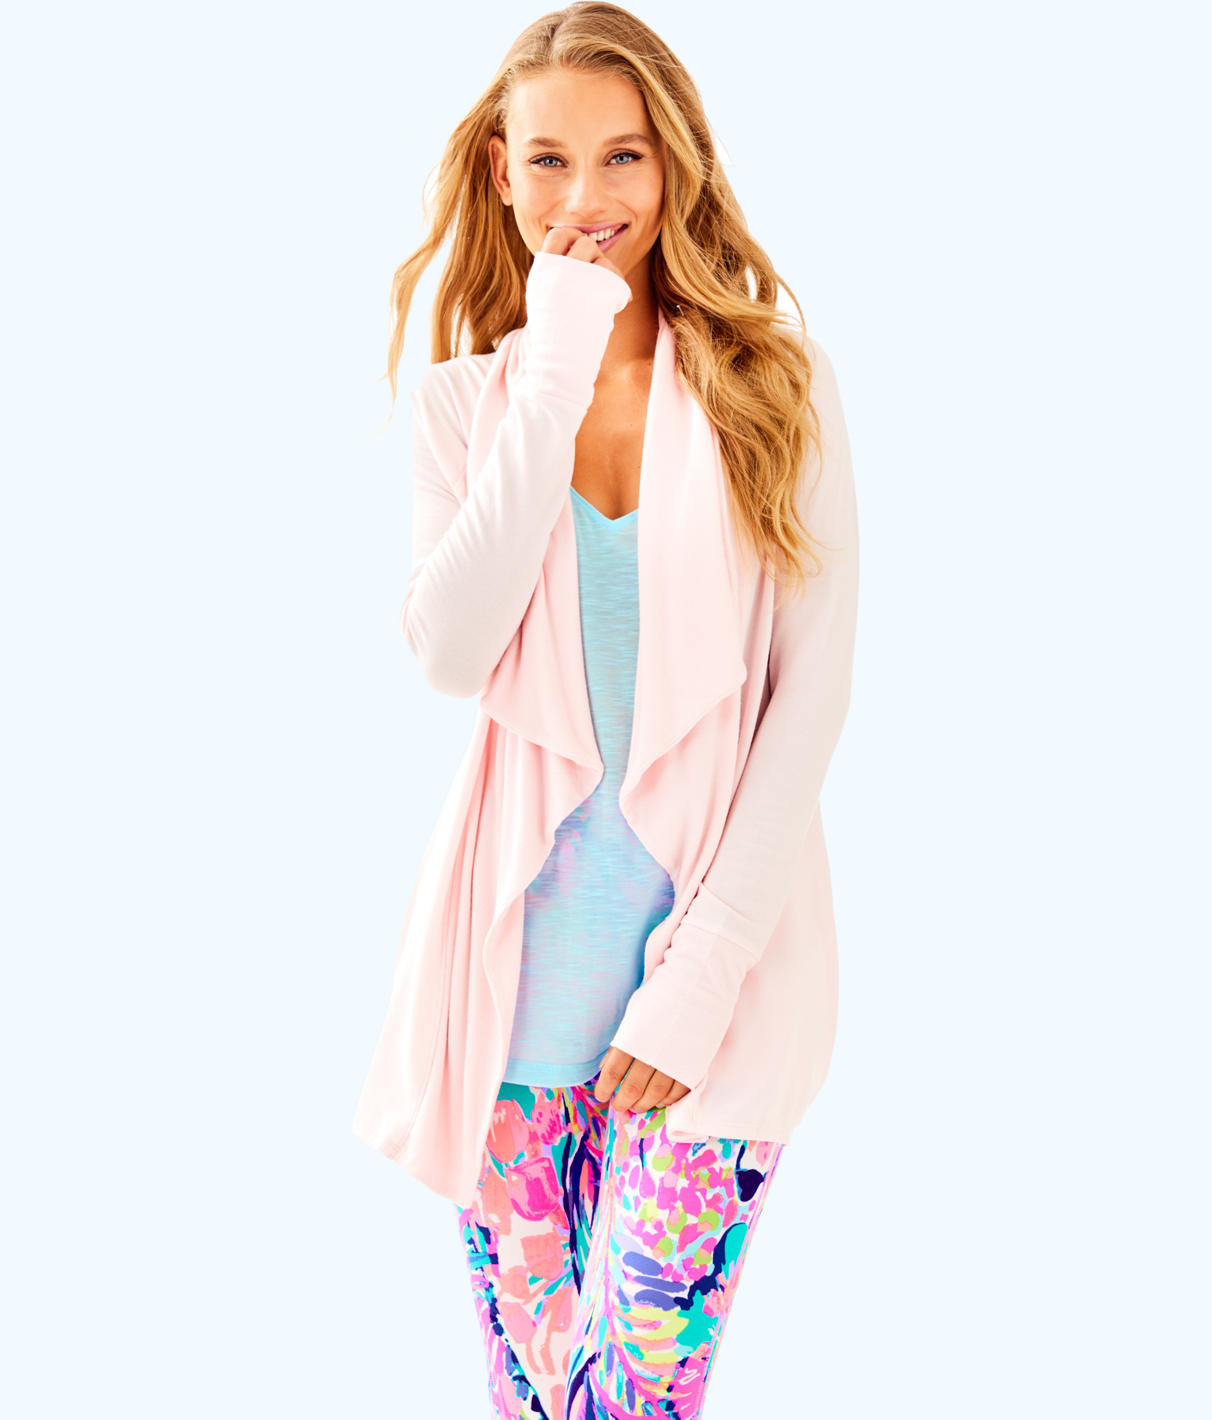 Lilly Pulitzer Lilly Pulitzer Womens Elyssa Wrap